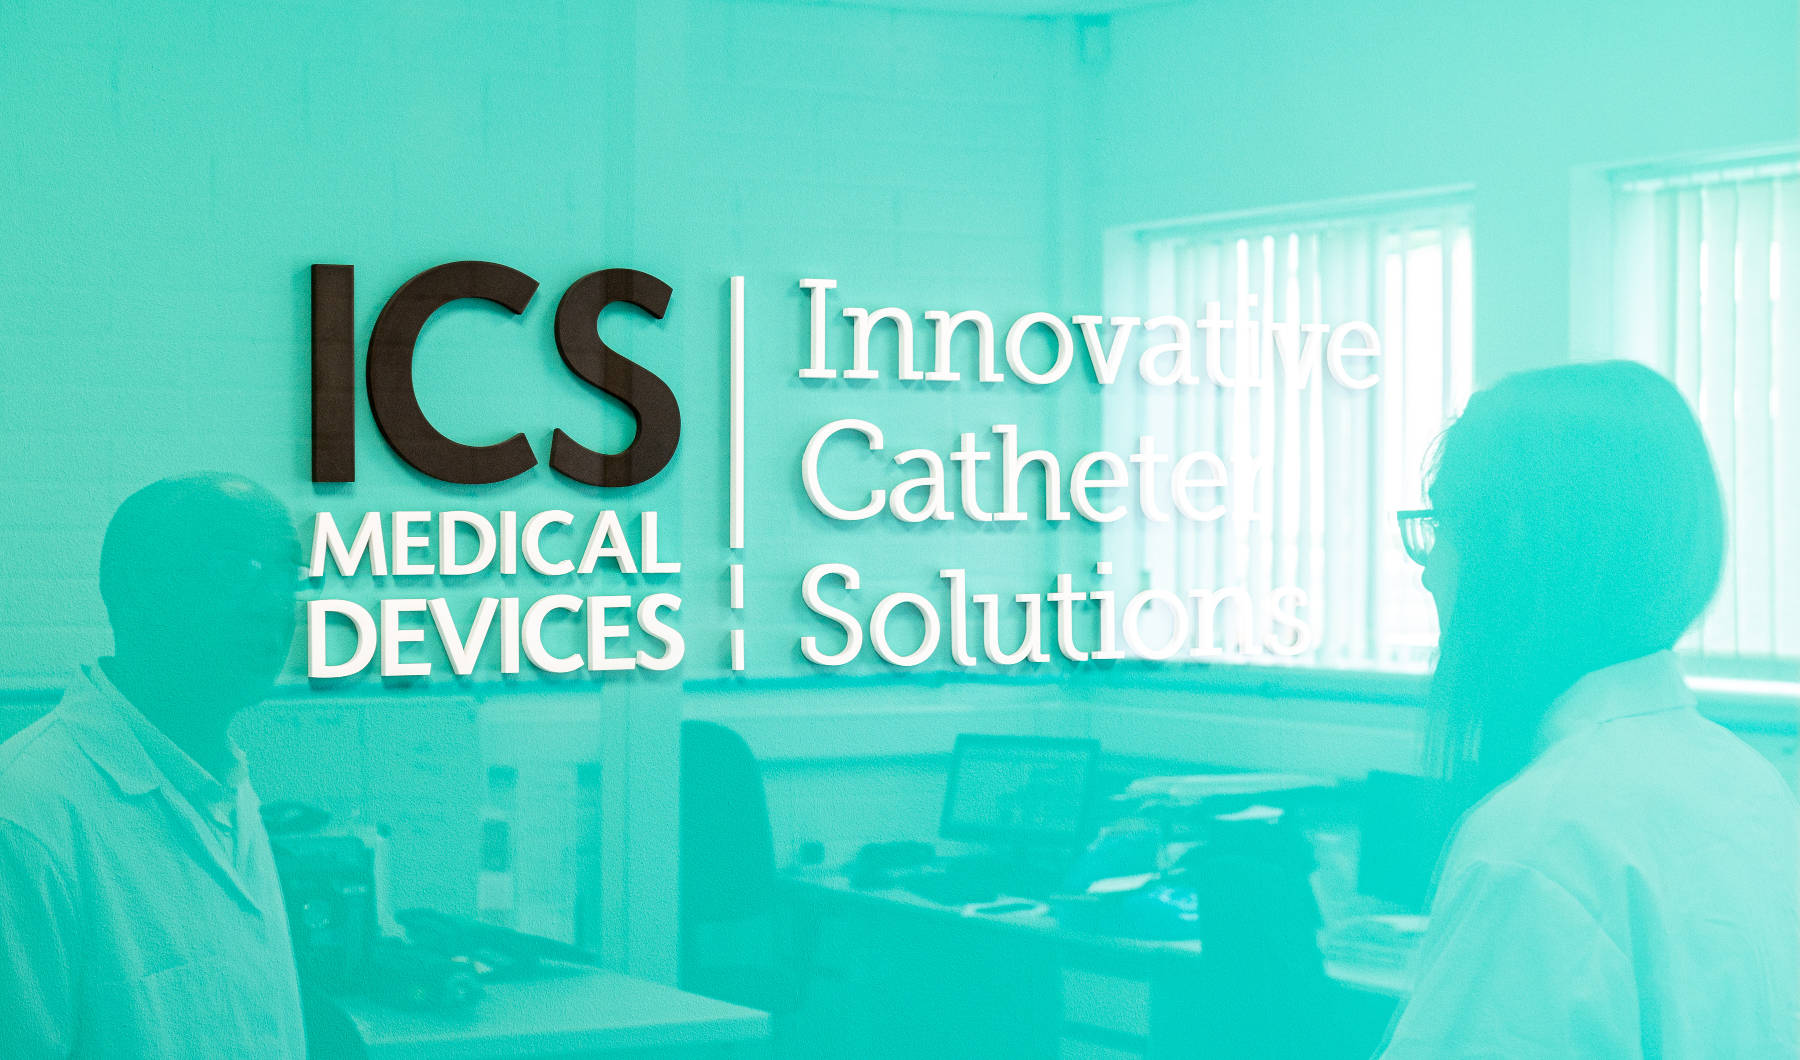 ICS Medical Device Branding inside offices